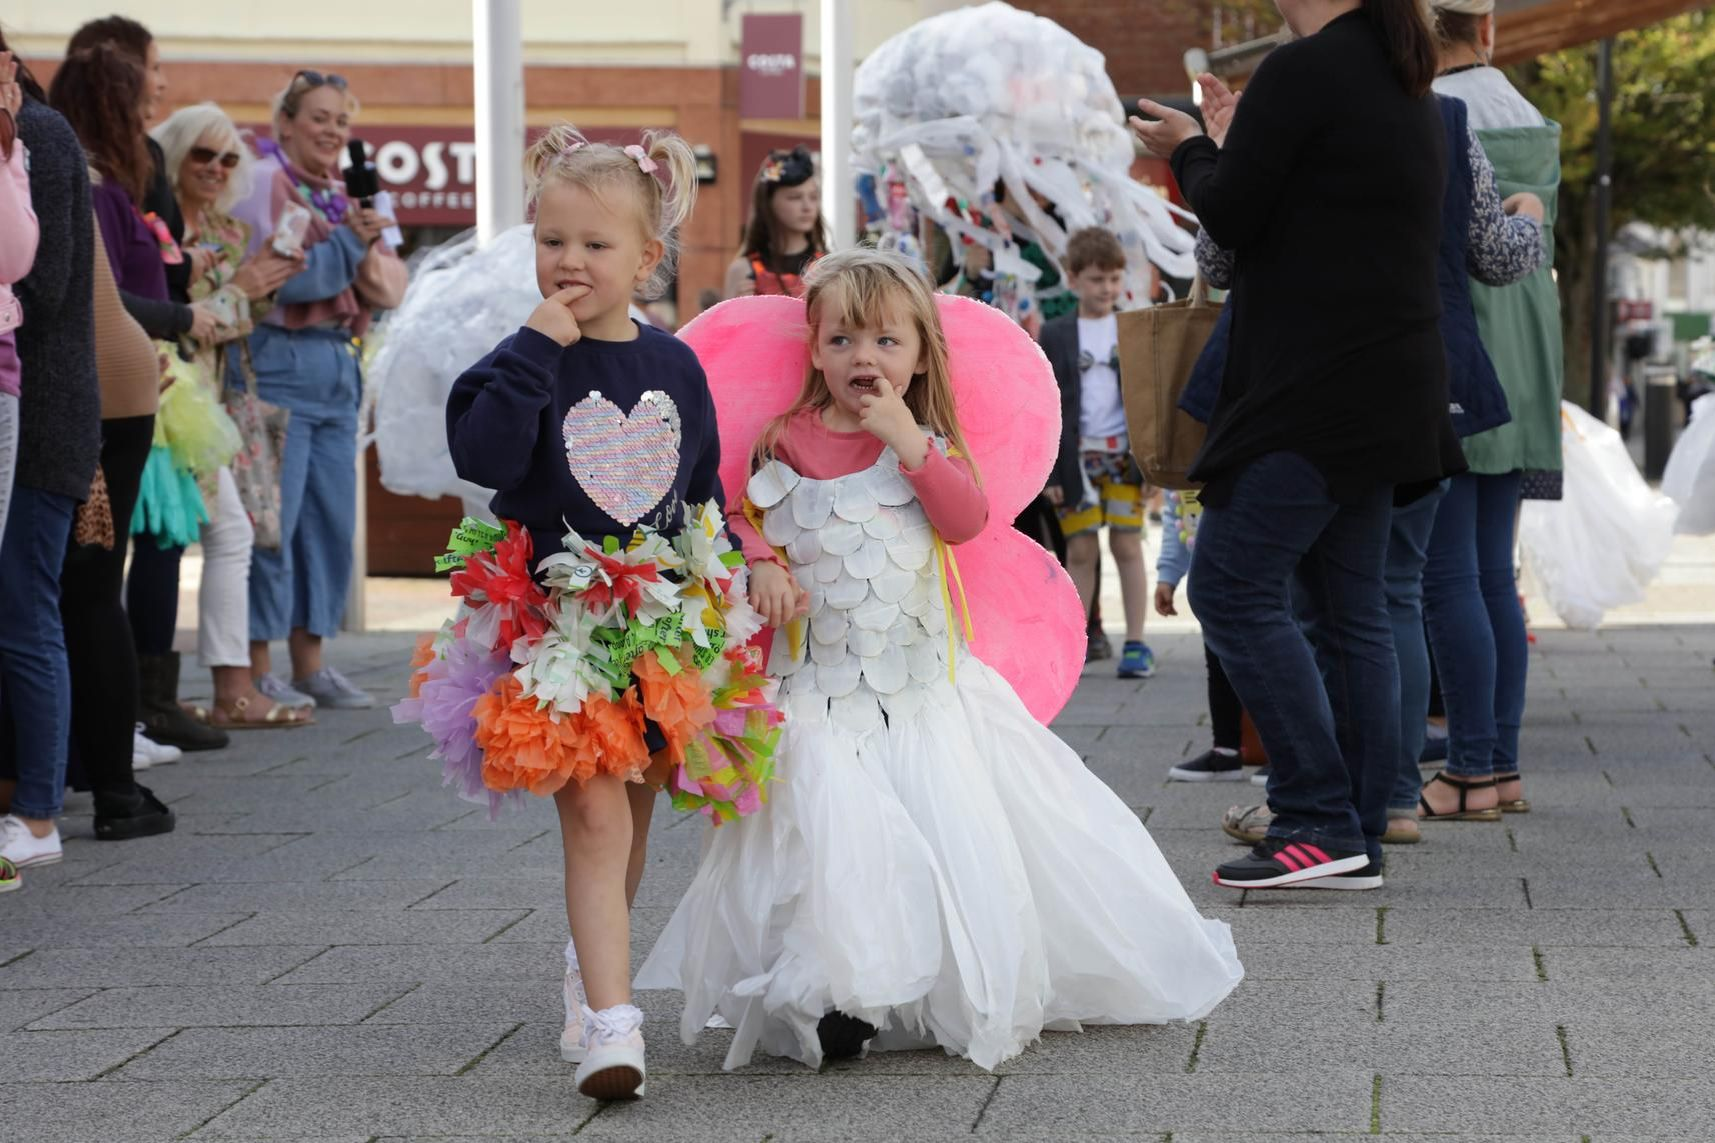 Children from Growing Places nursery schools showed off outfits made of plastic waste at a Rubbish Fashion Show in Fareham and Waterlooville to encourage recycling